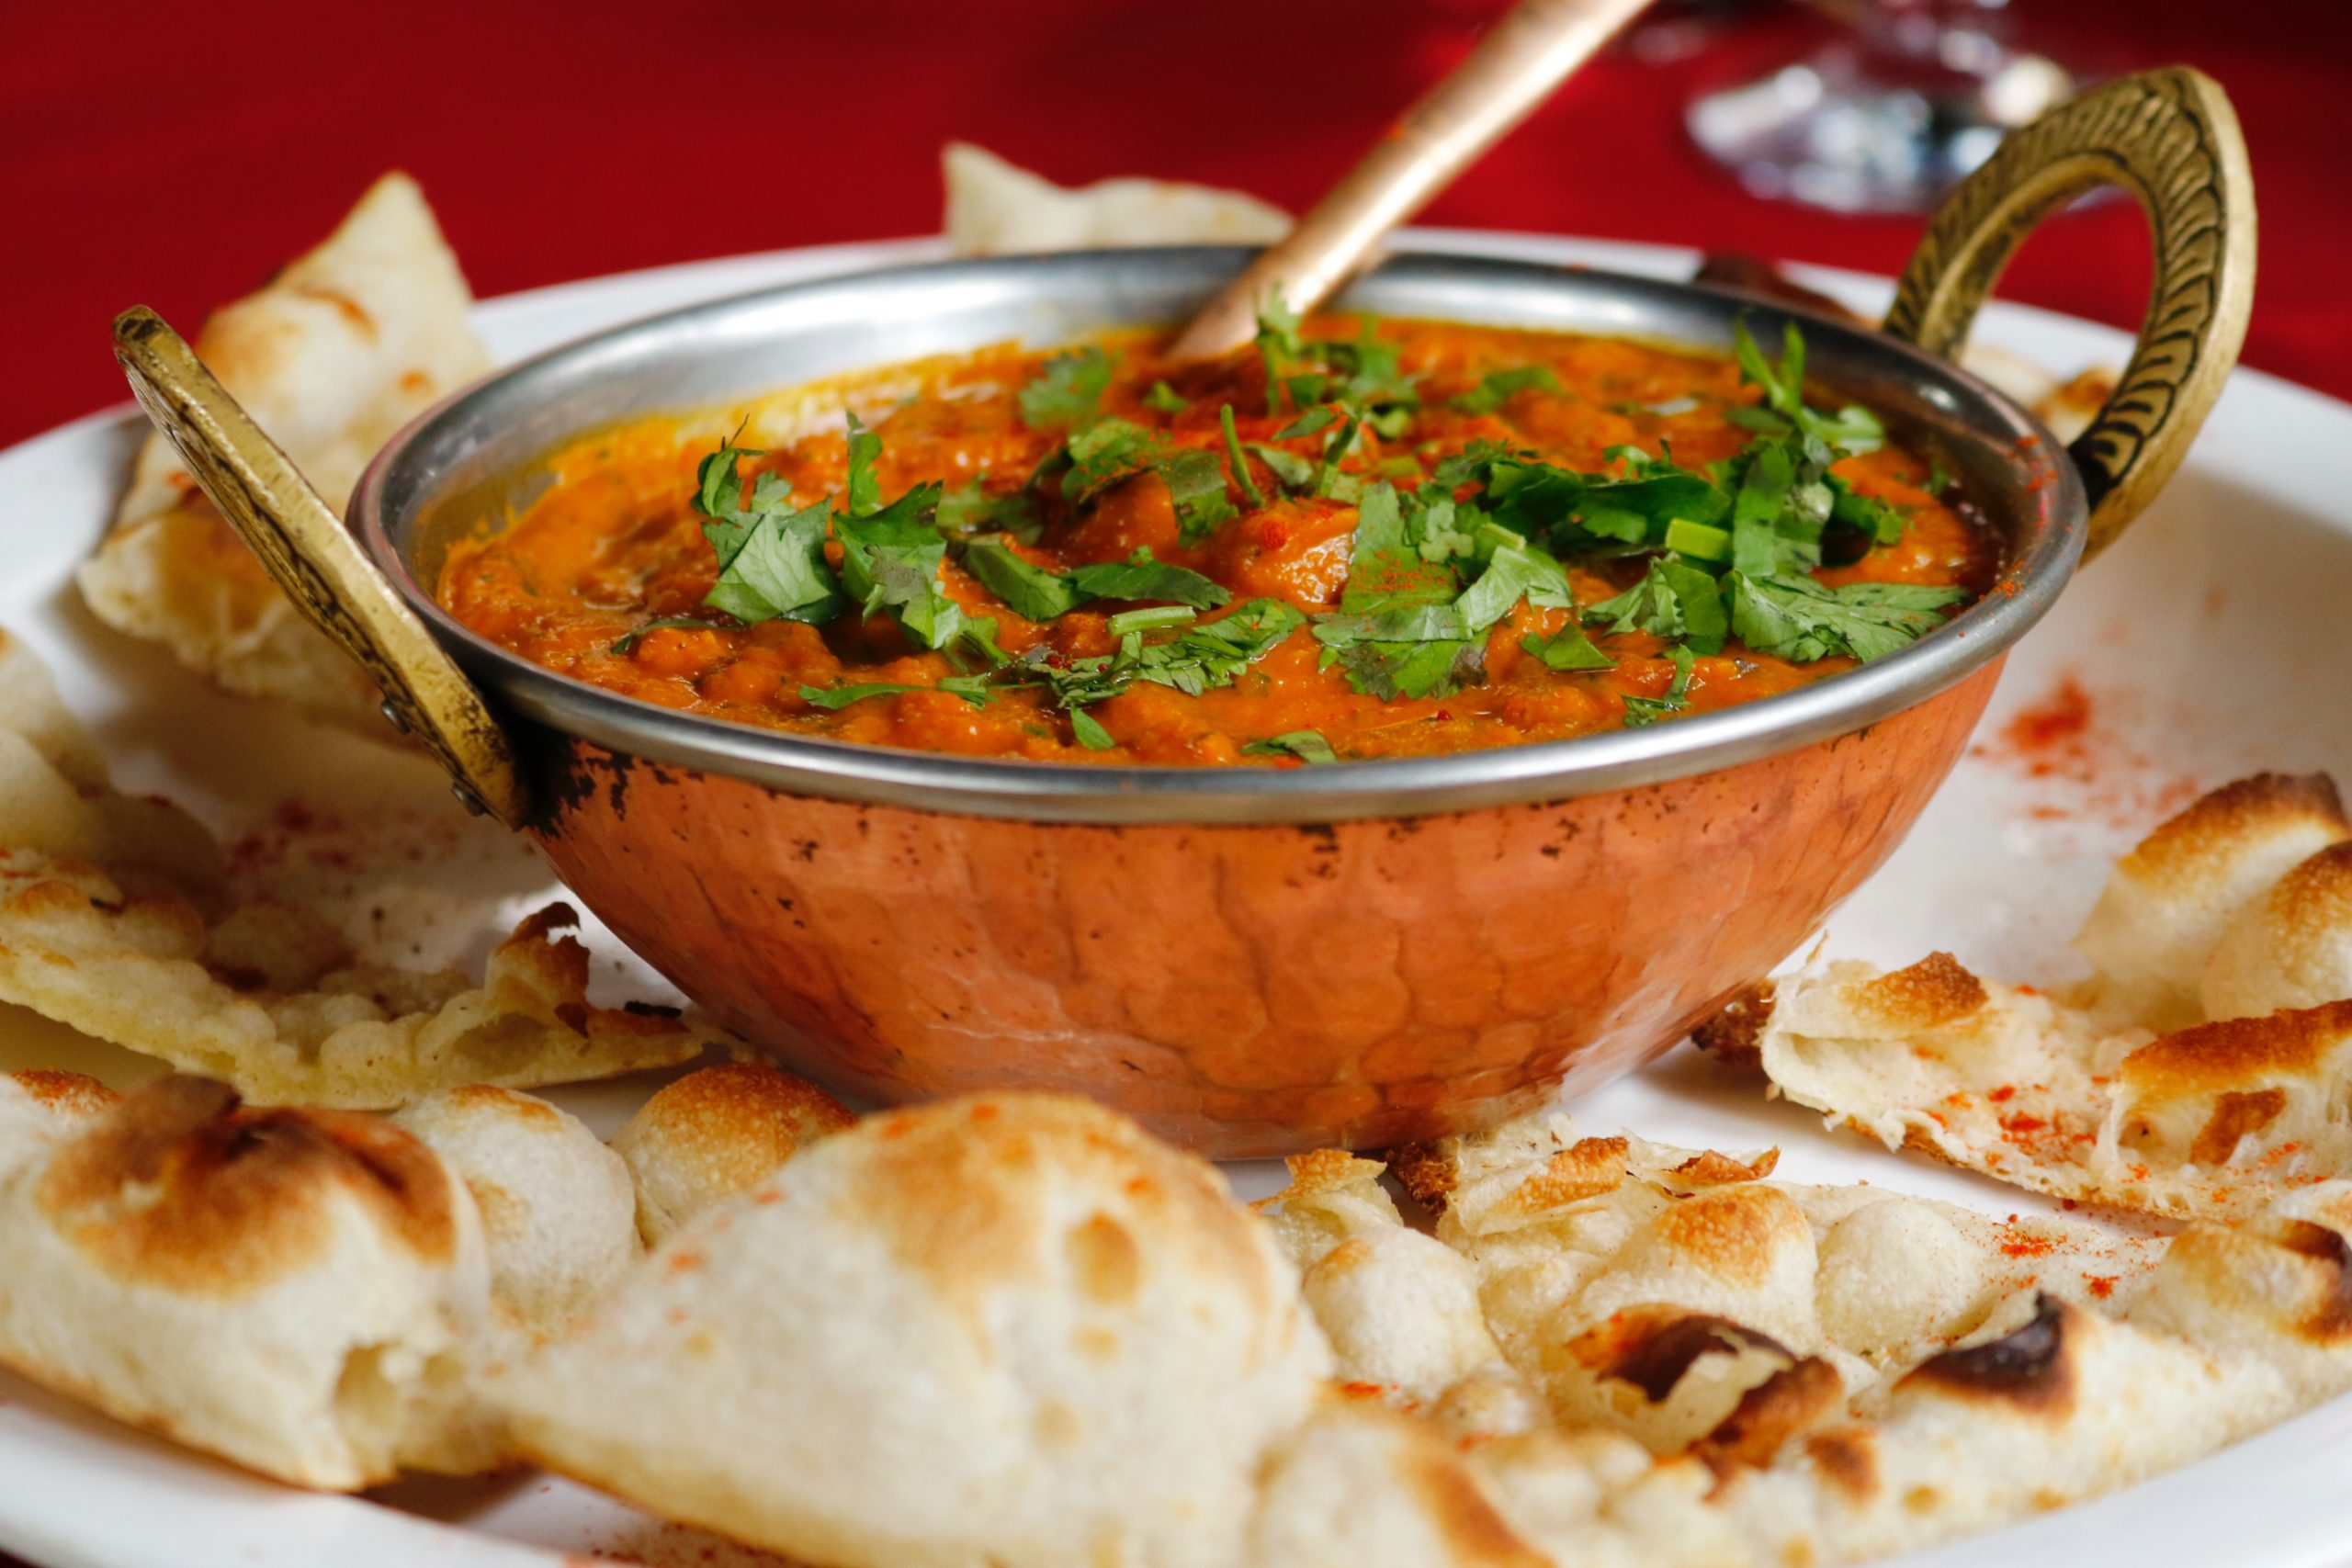 Alcohol-infused Naan recipe shared by Maine's longest-running Indian restaurant